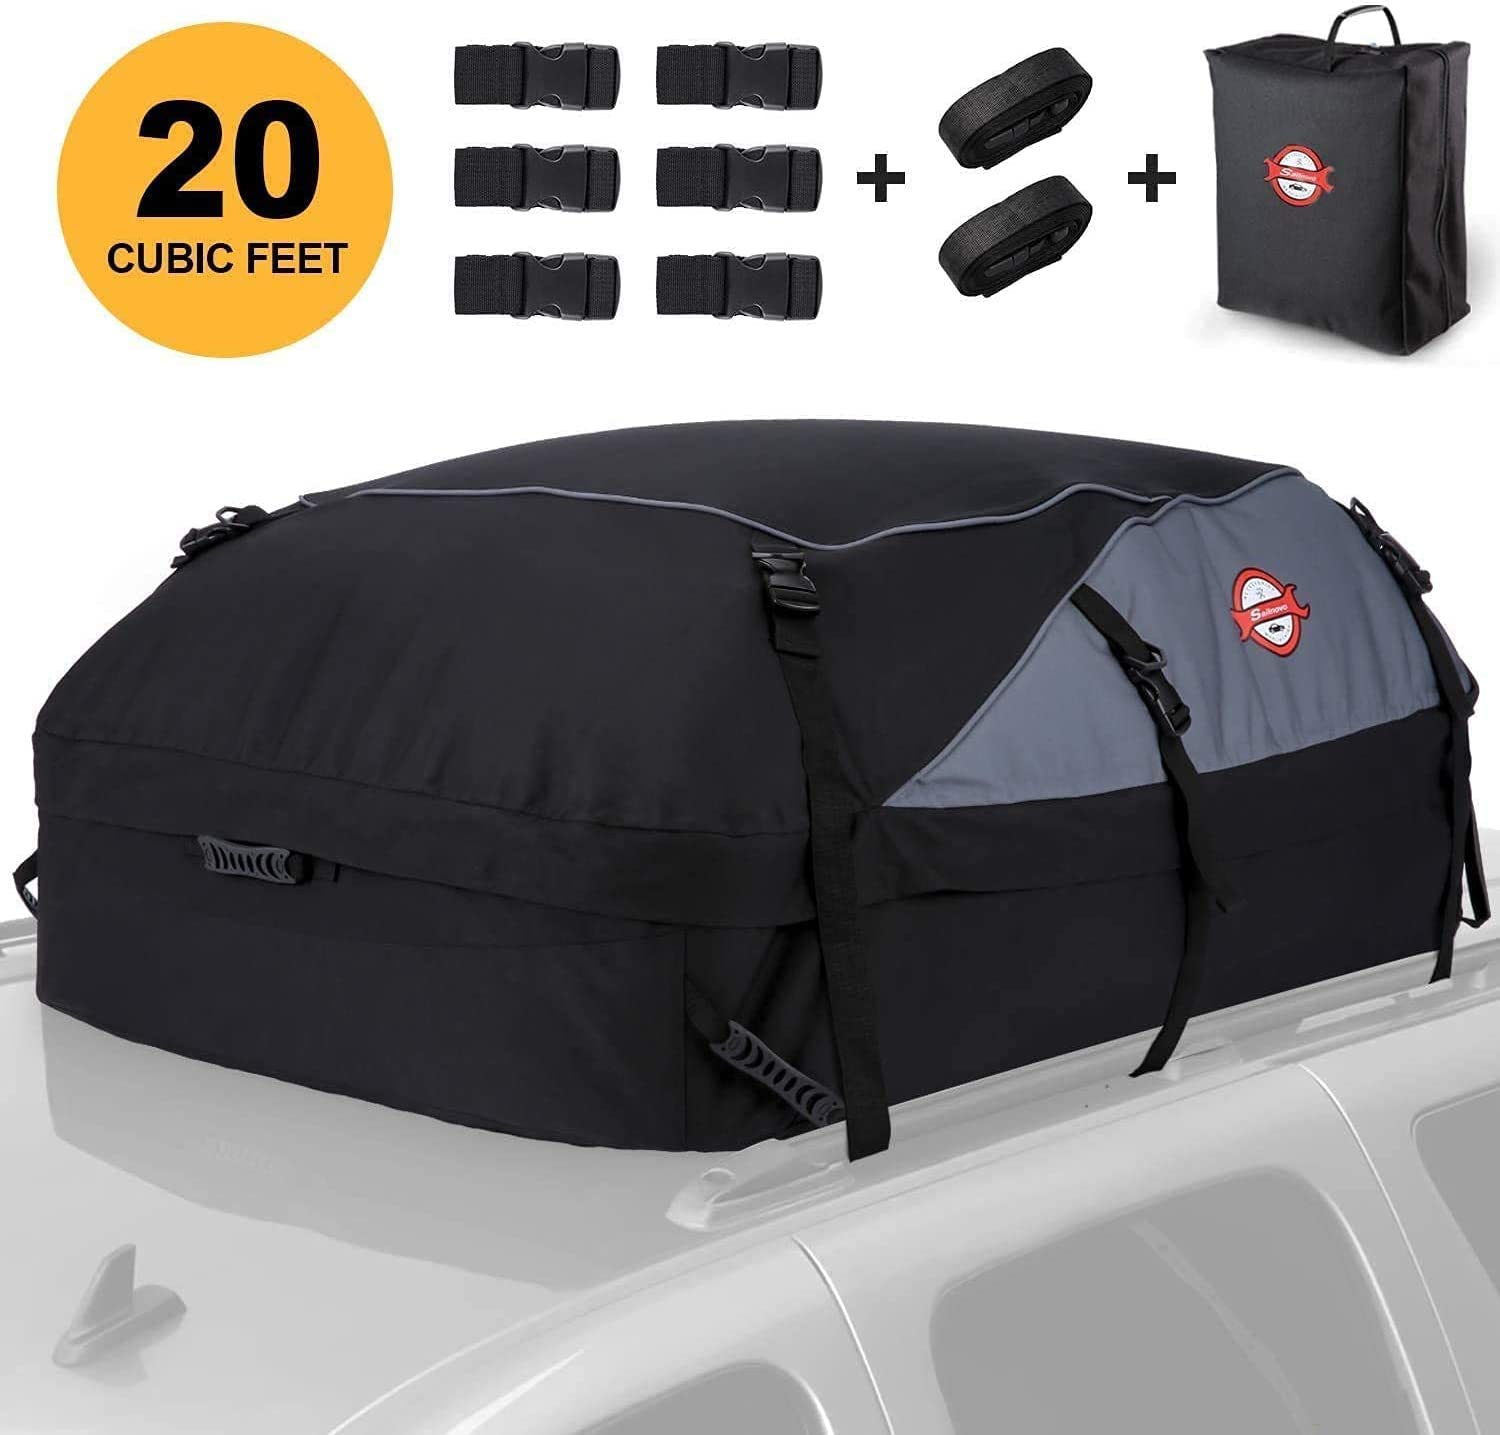 Car Roof Bag Attention Miami Mall brand Cargo Carrier Rooftop Cubic 20 Feet Waterproof